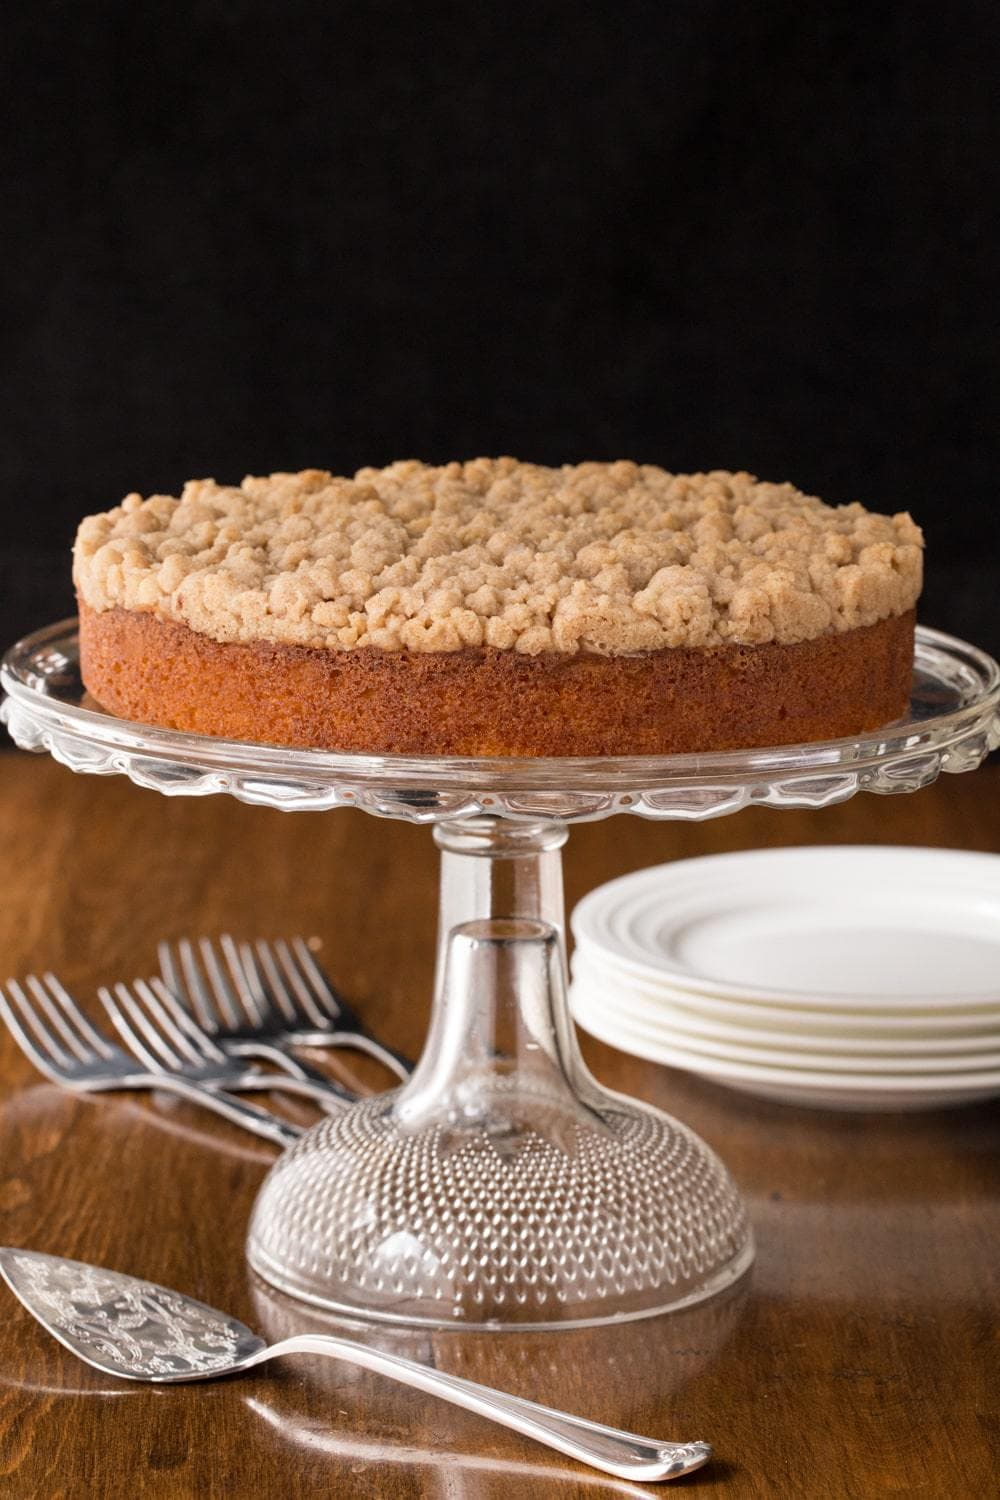 Topped with a sweet, buttery crumble, this Easy Overnight Coffee Cake is super moist and perfect for holidays and lazy weekends. thecafesucrefarine.com